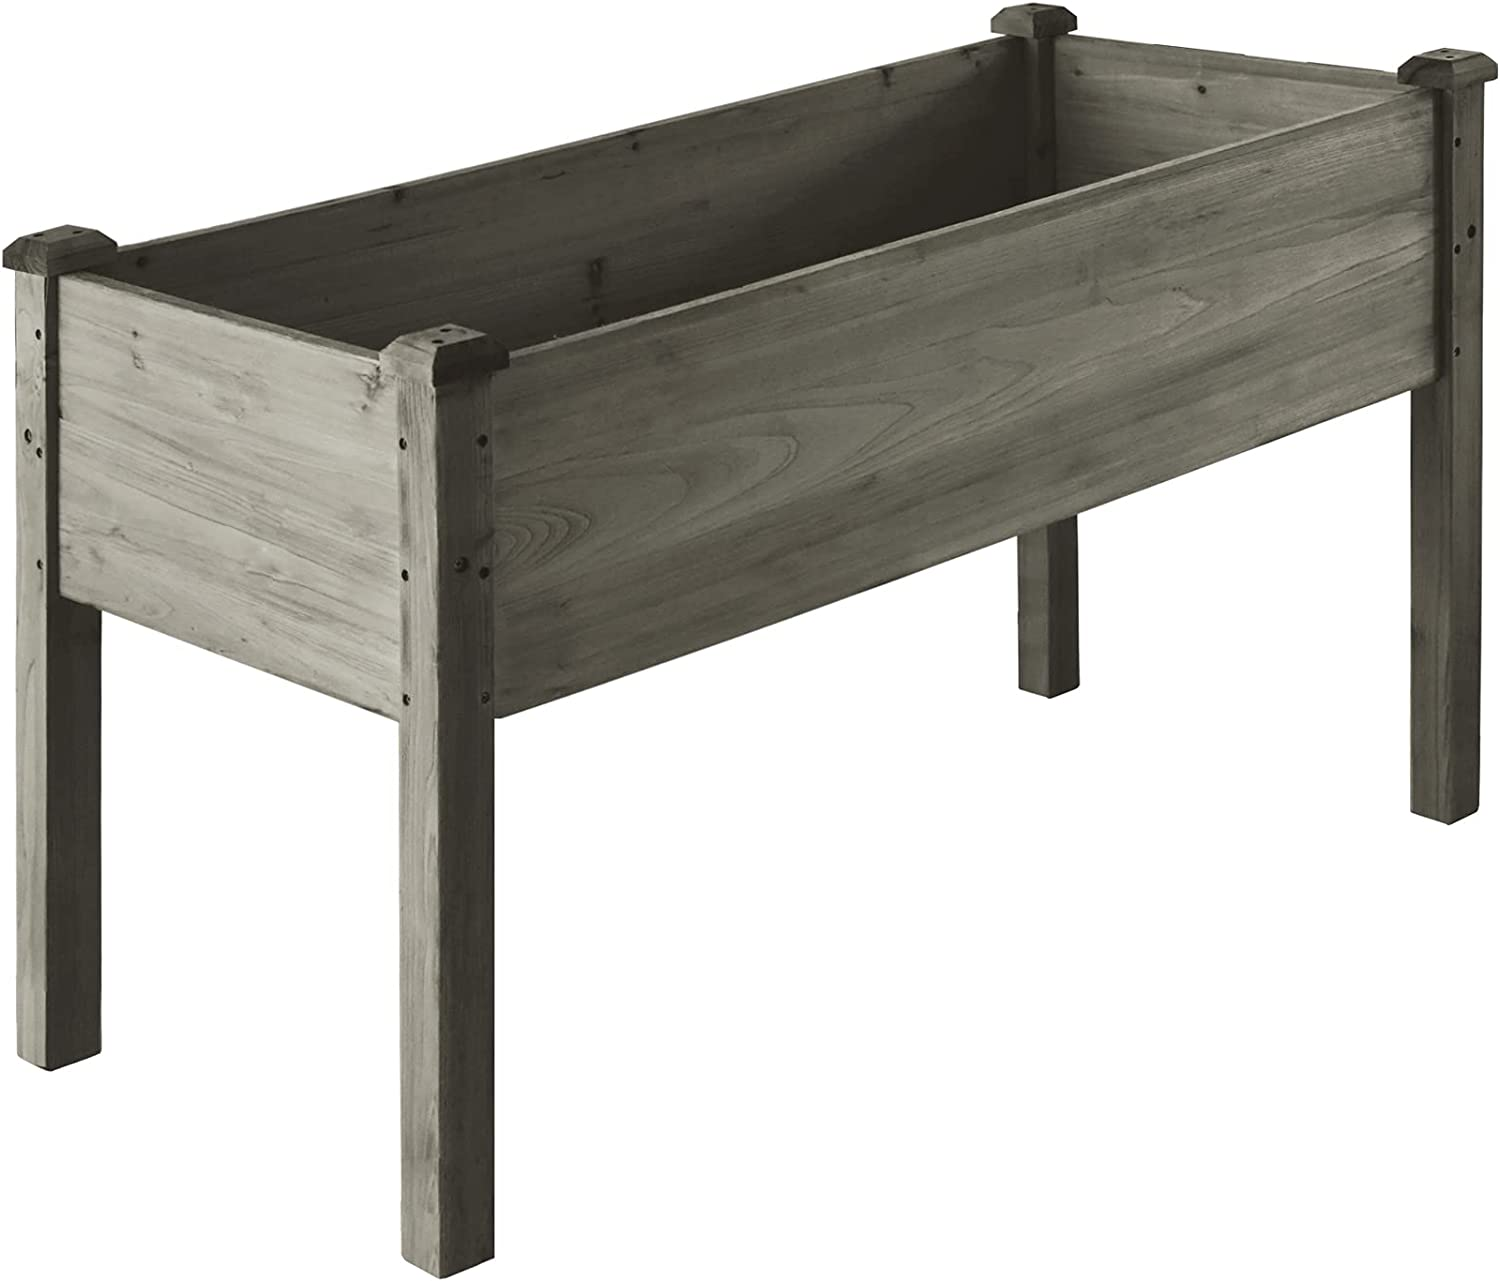 Max 76% OFF LZRS 33x17x30 inches Raised Garden Wooden Elevated Bed Planter B Max 63% OFF